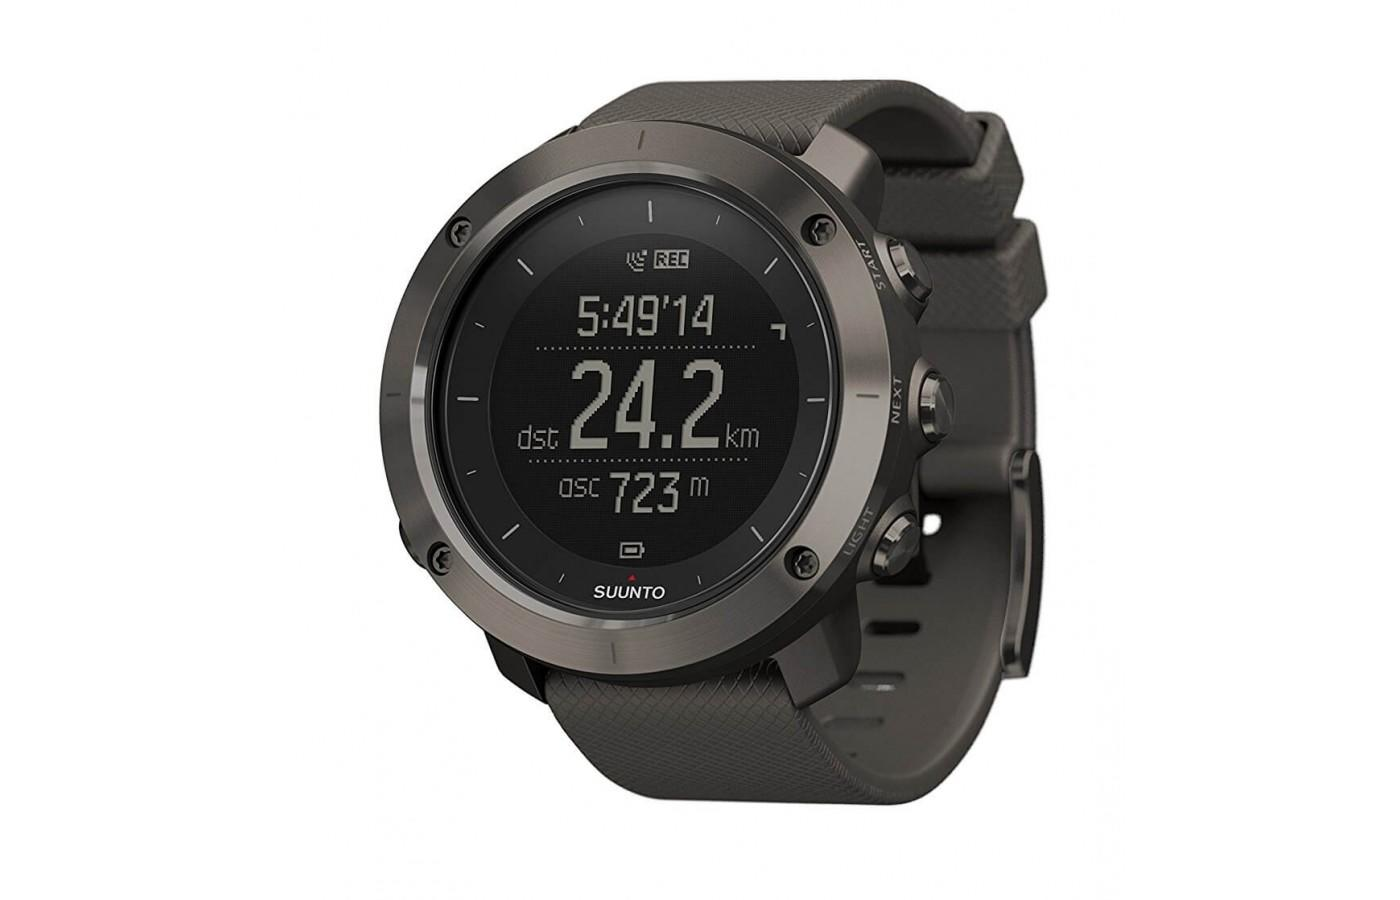 Suunto Traverse can be used for multiple activities